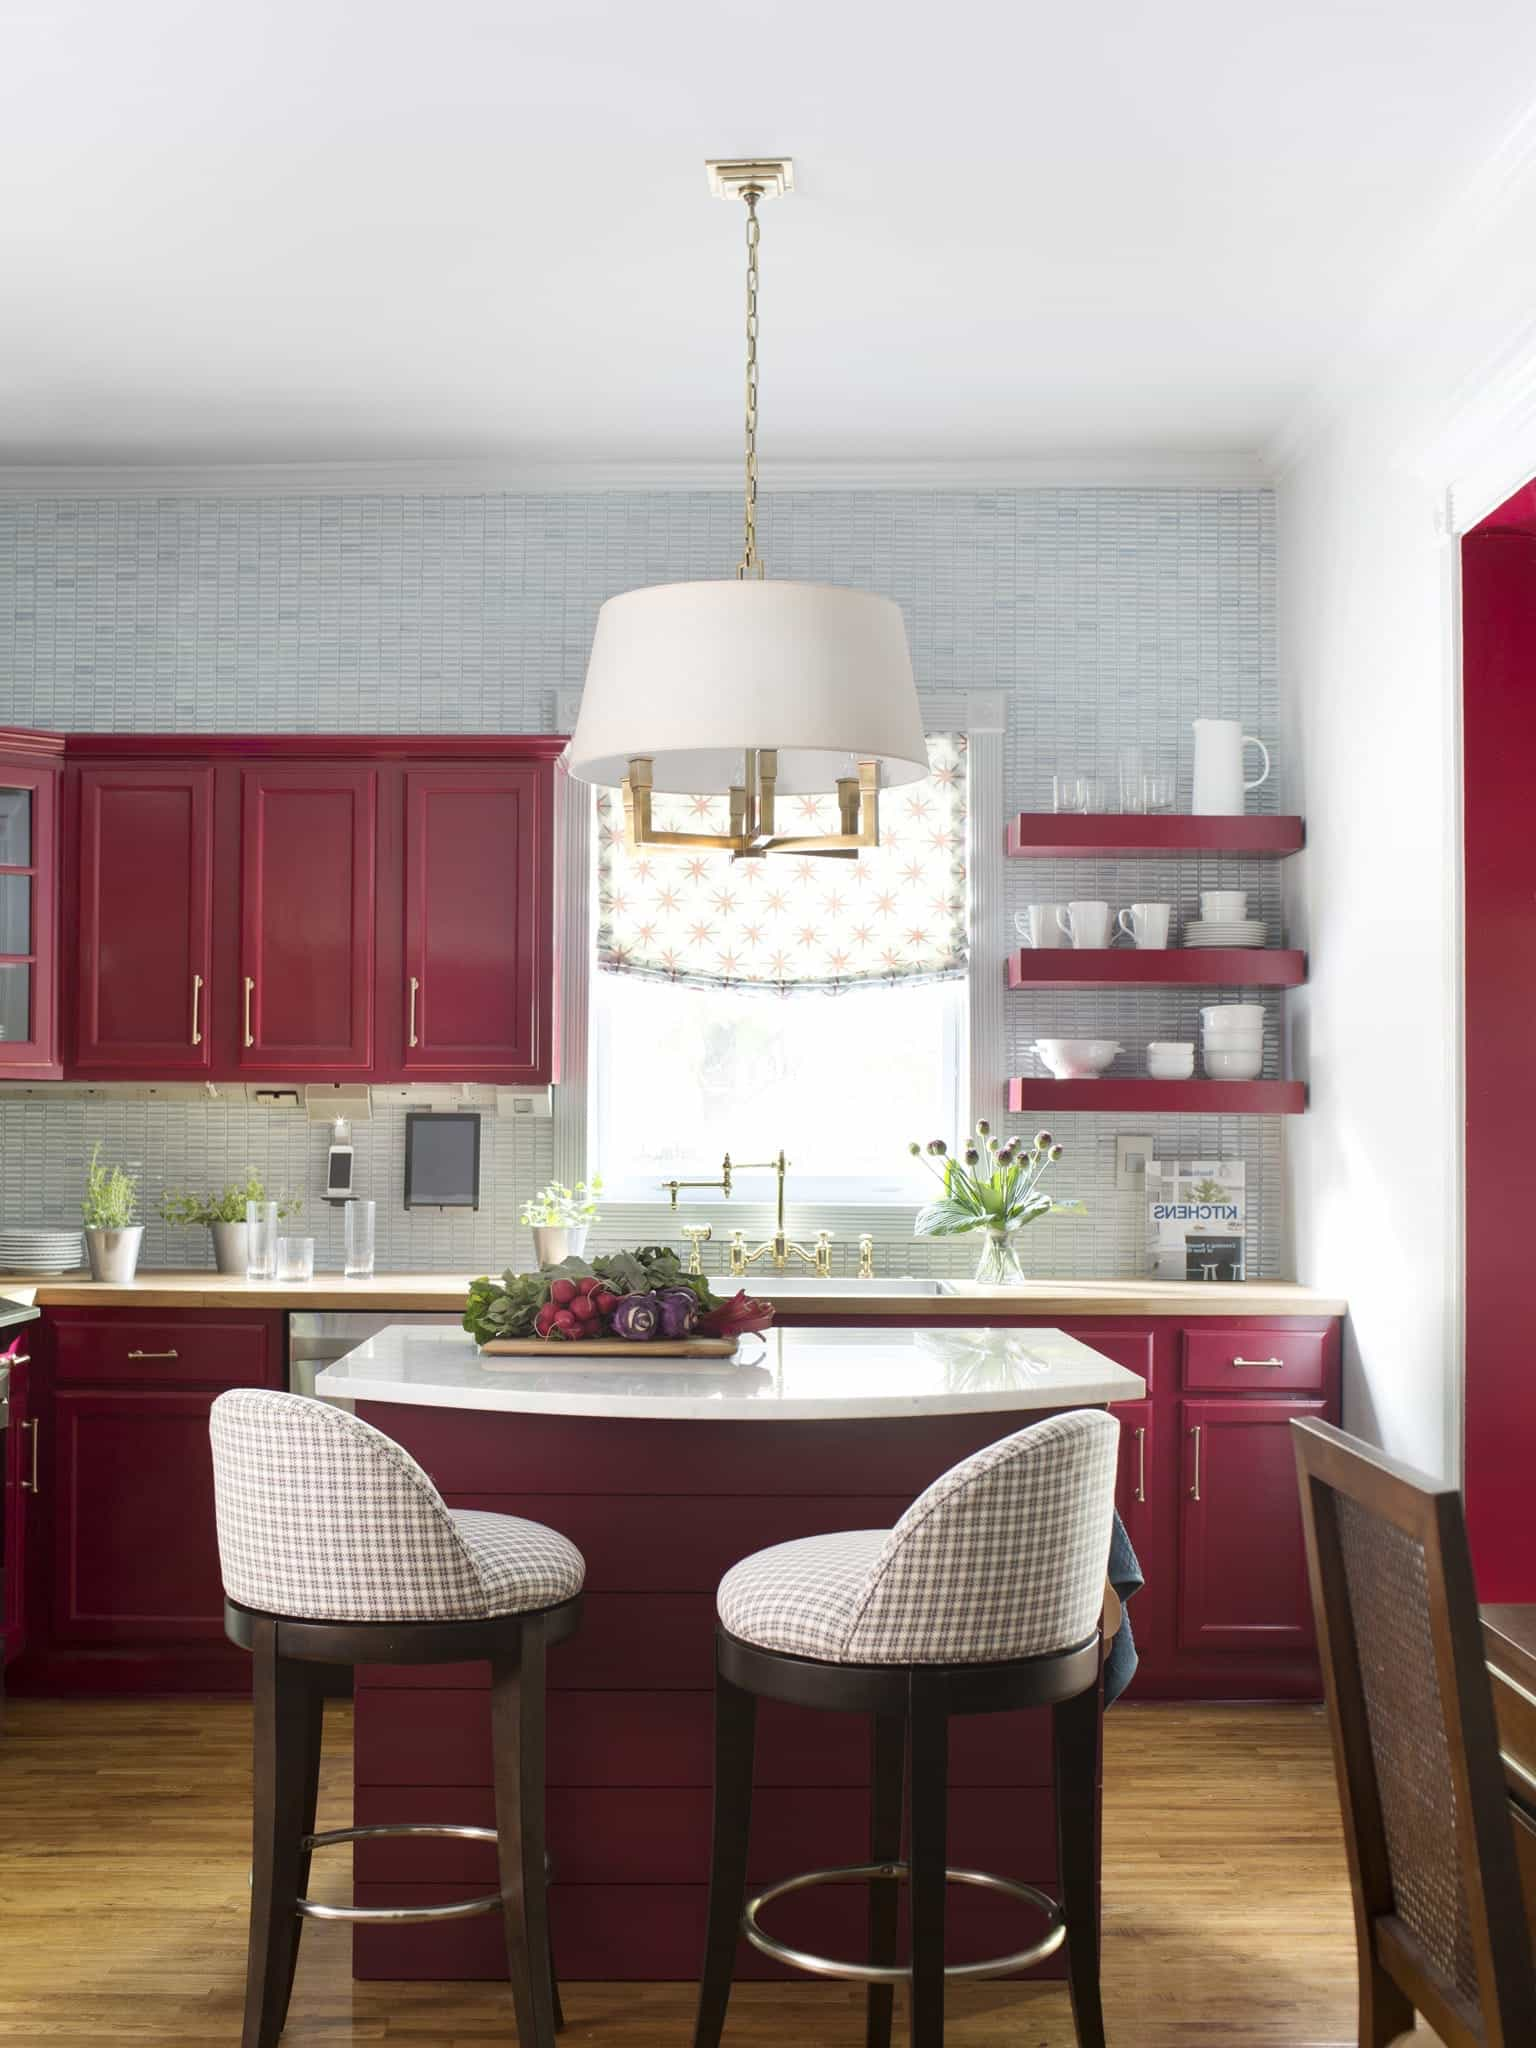 Modern Burgundy Kitchen Makeover With Wood Cabinets (View 3 of 4)